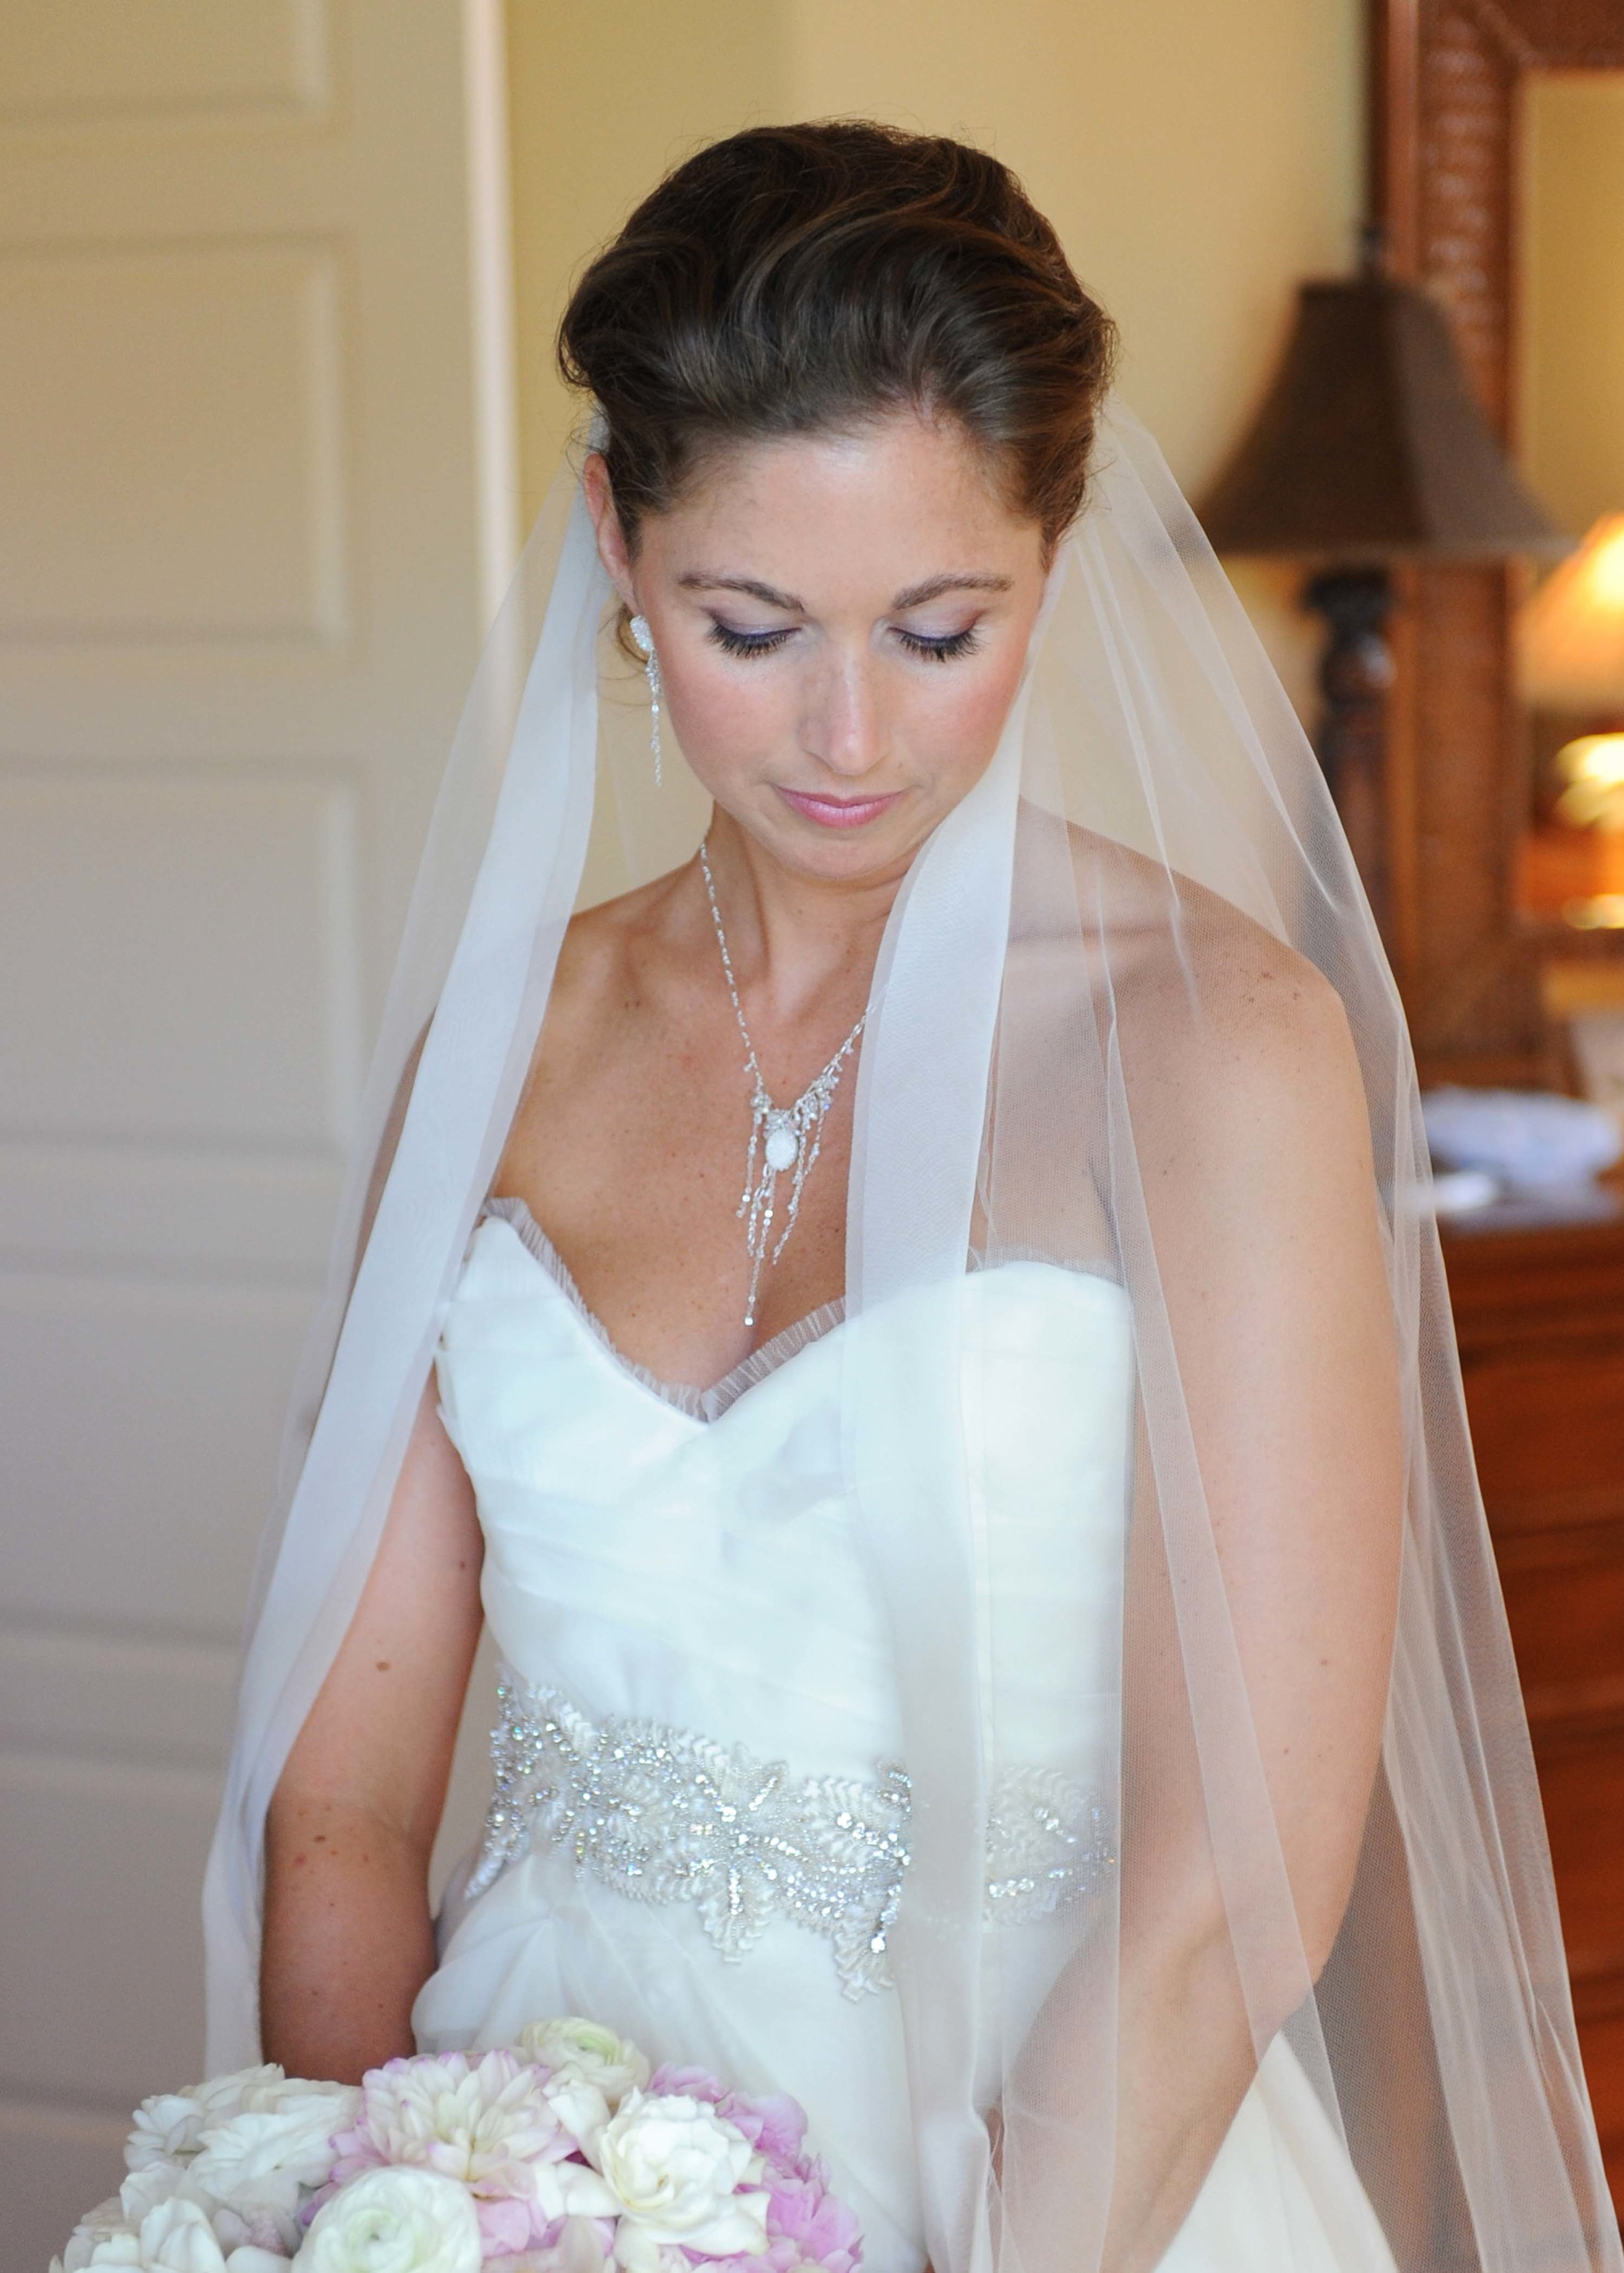 Bride's necklace and earrings